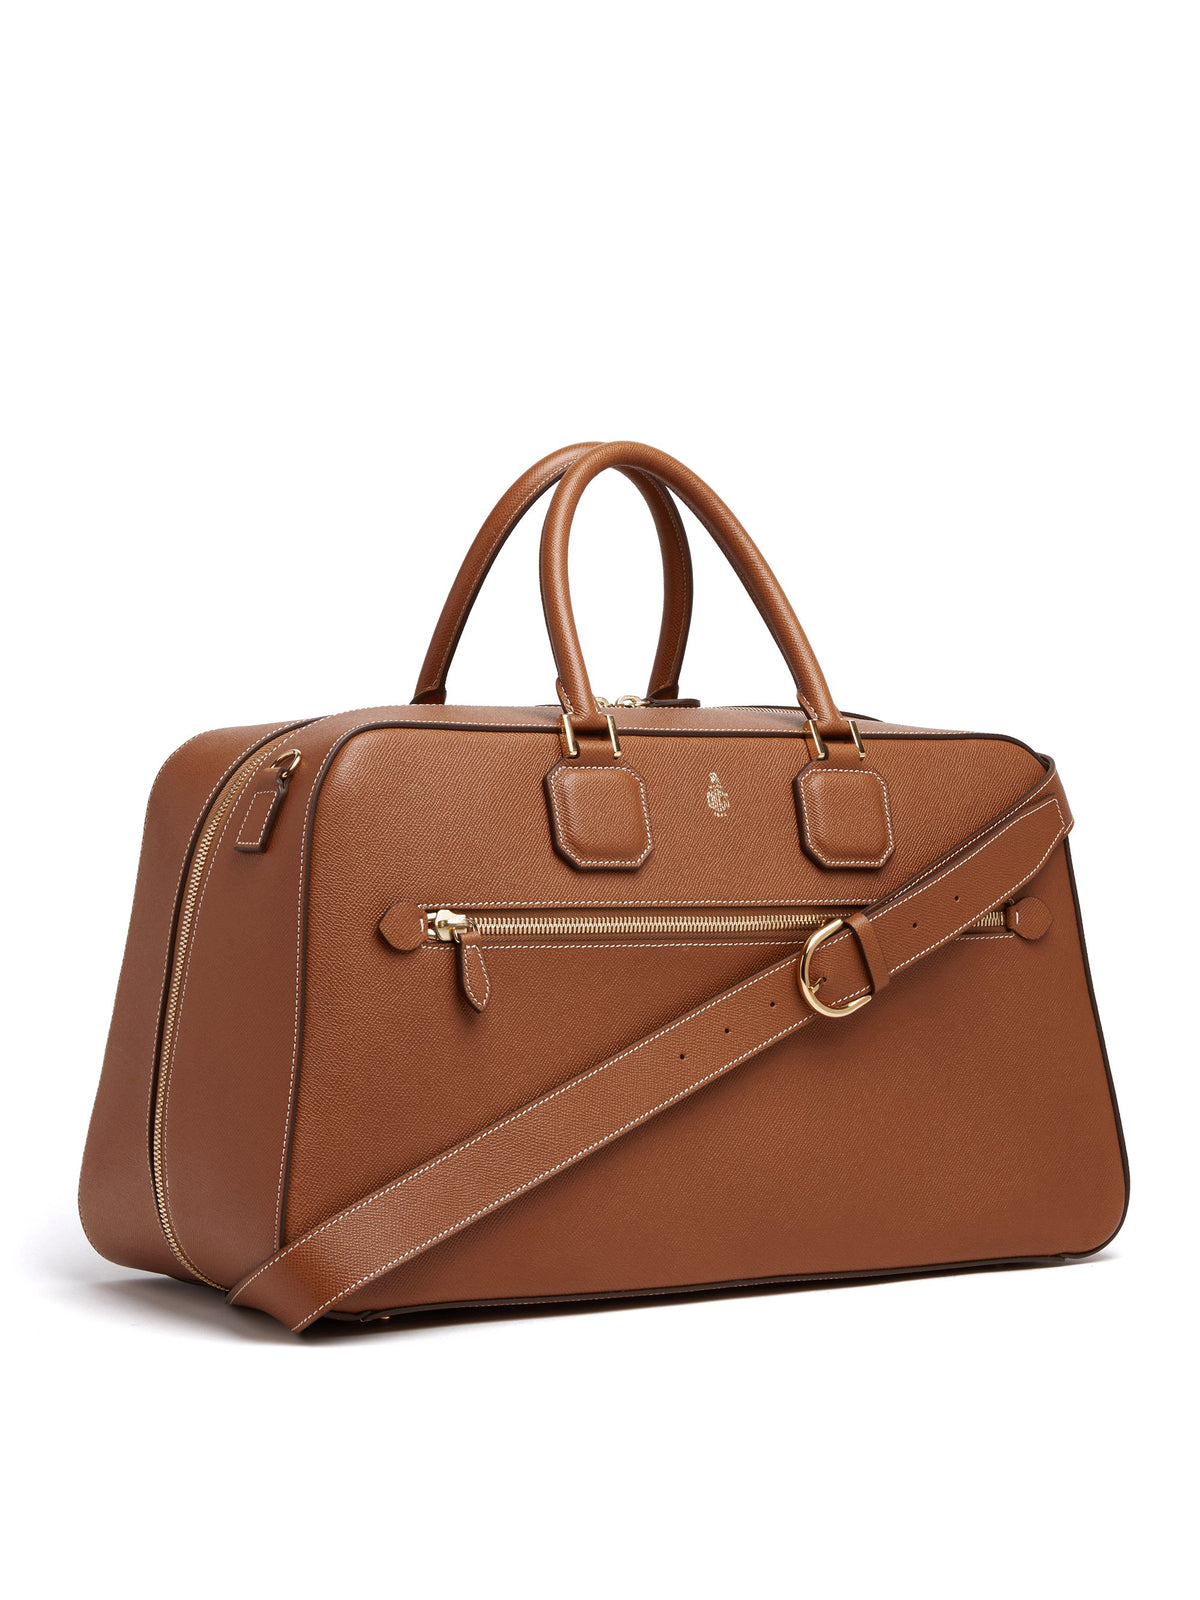 Mark Cross Cole Leather Duffle Bag Saffiano Luggage Side